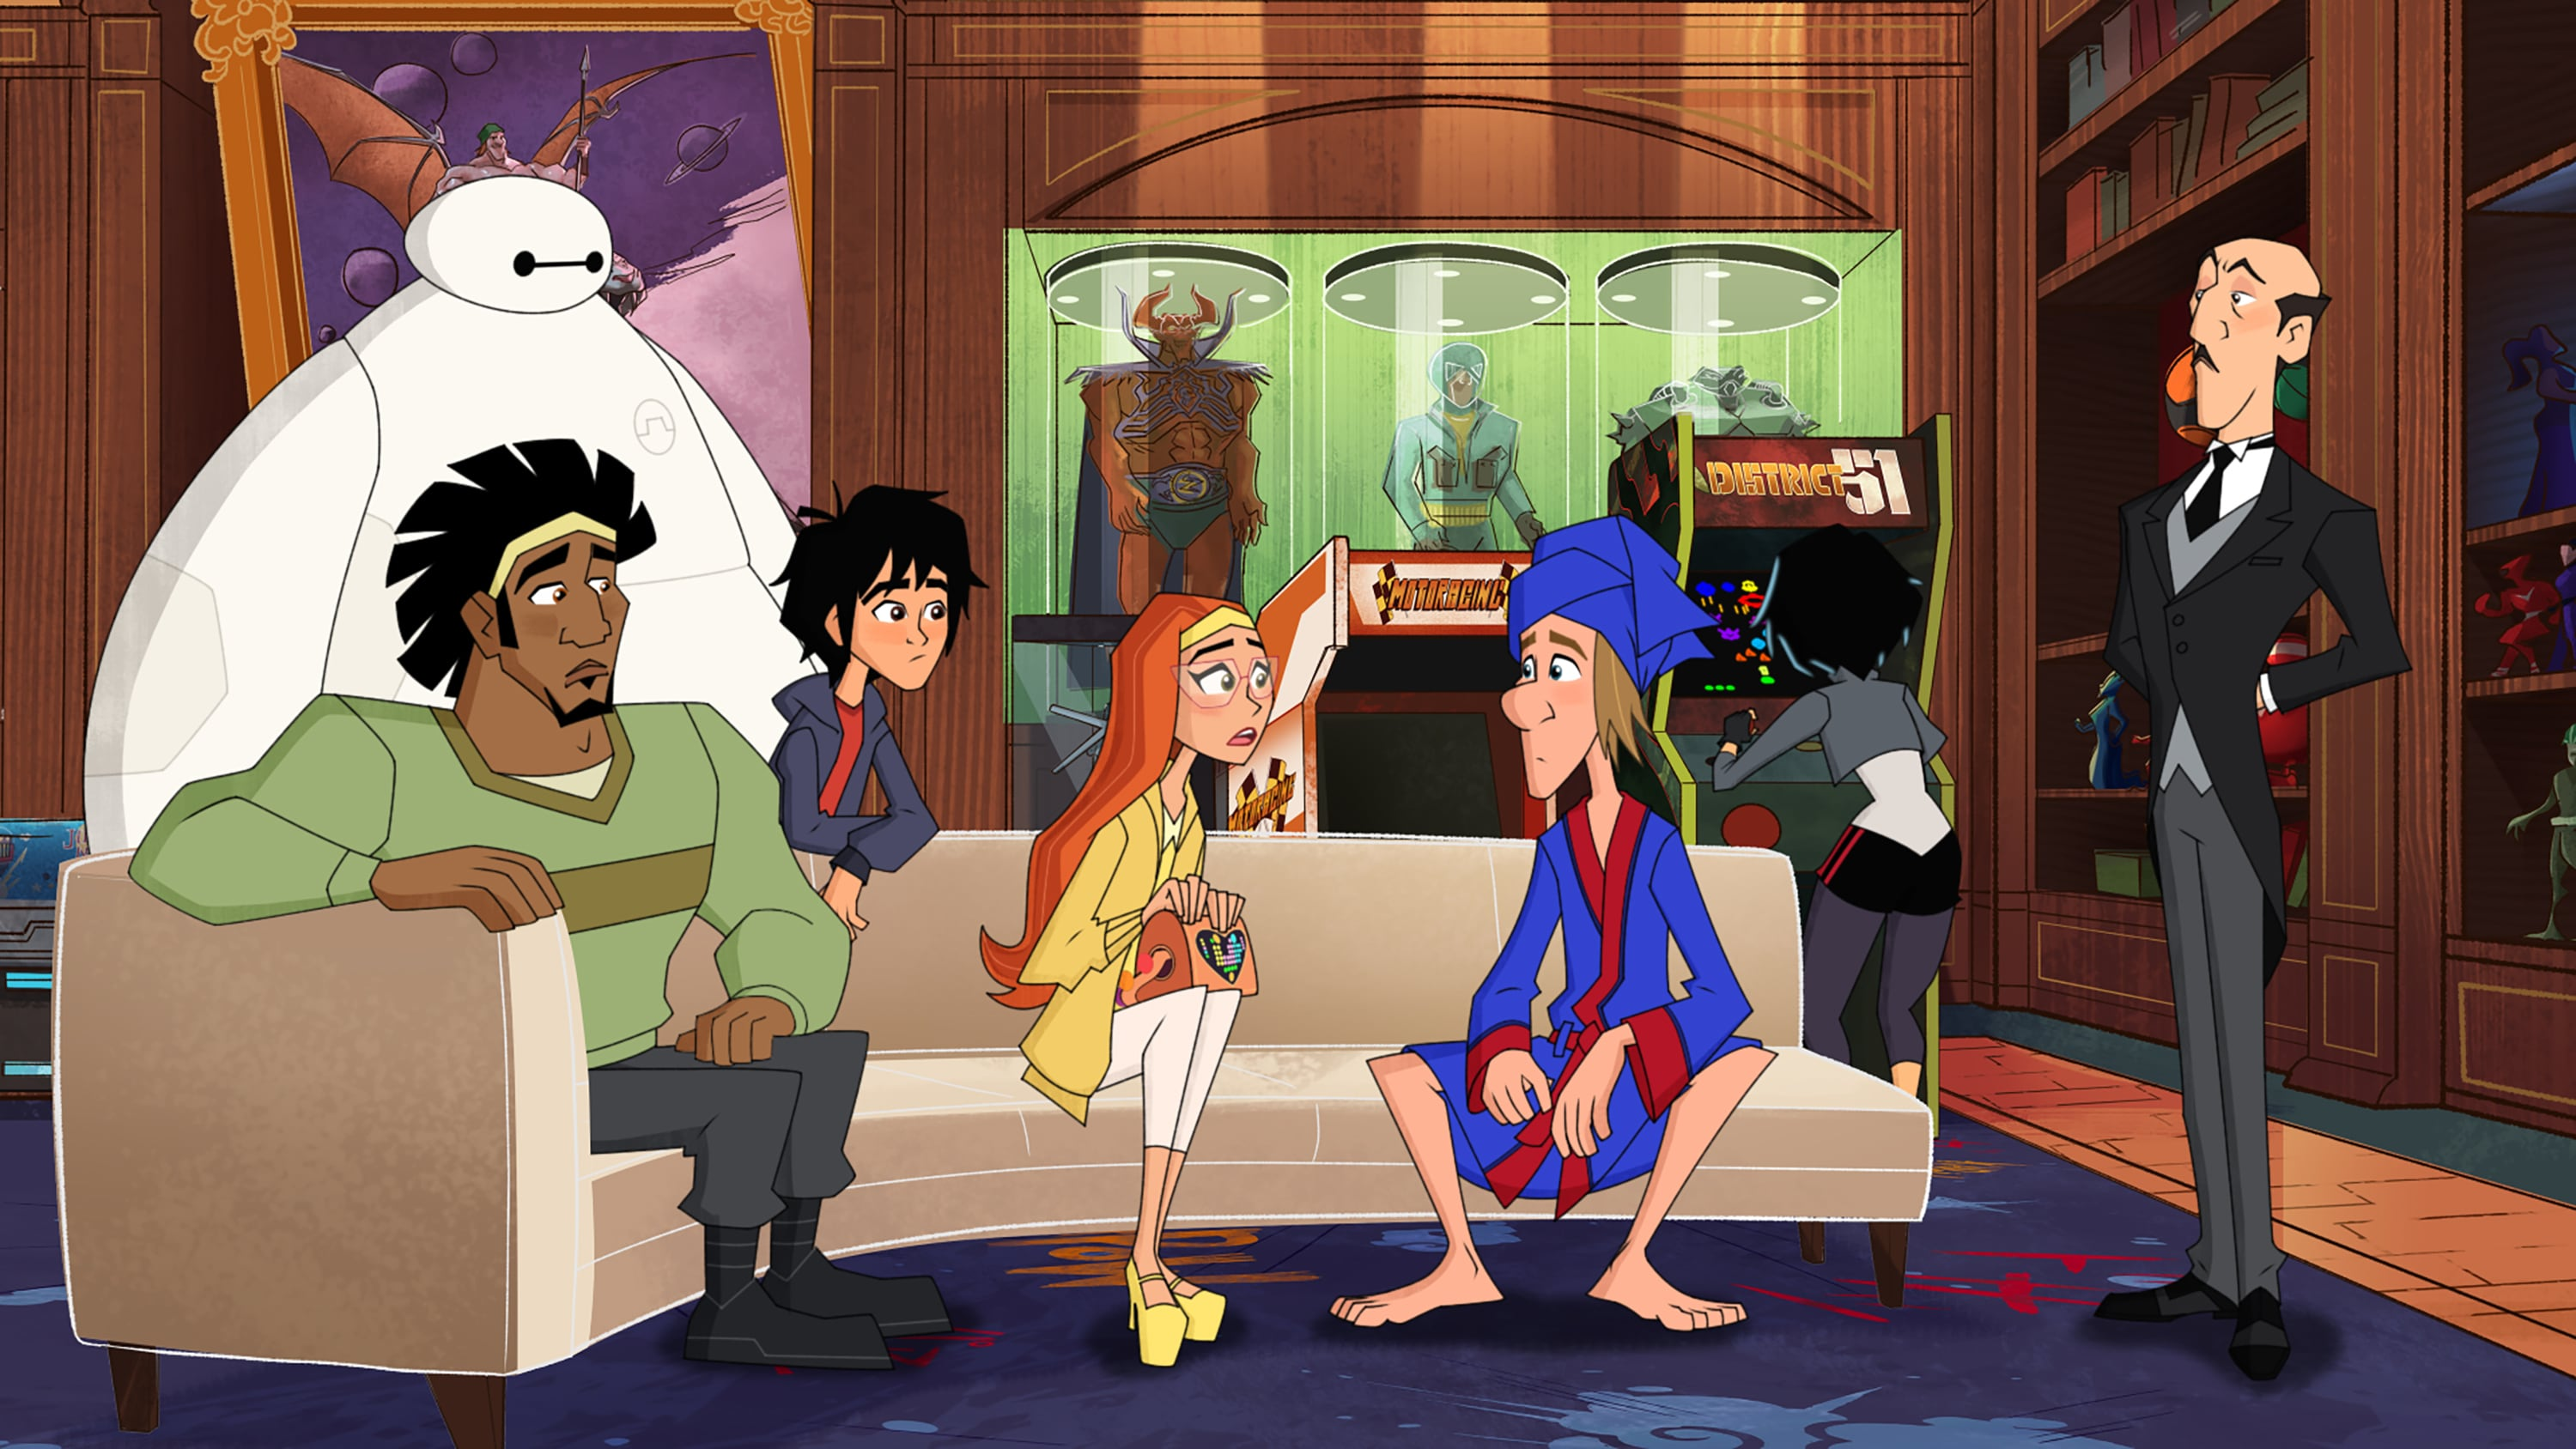 Big Hero 6 The Series showcase image 1